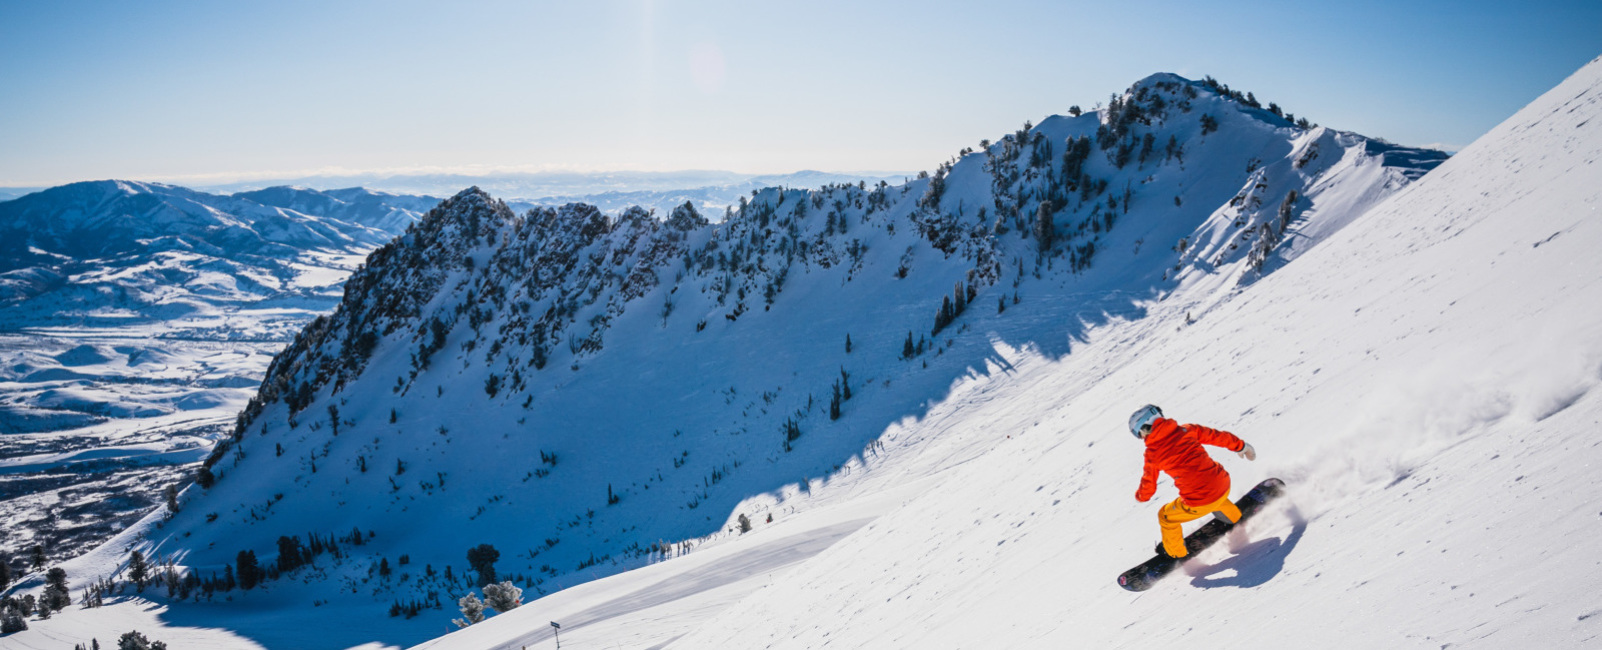 The Different Sides of Snowbasin